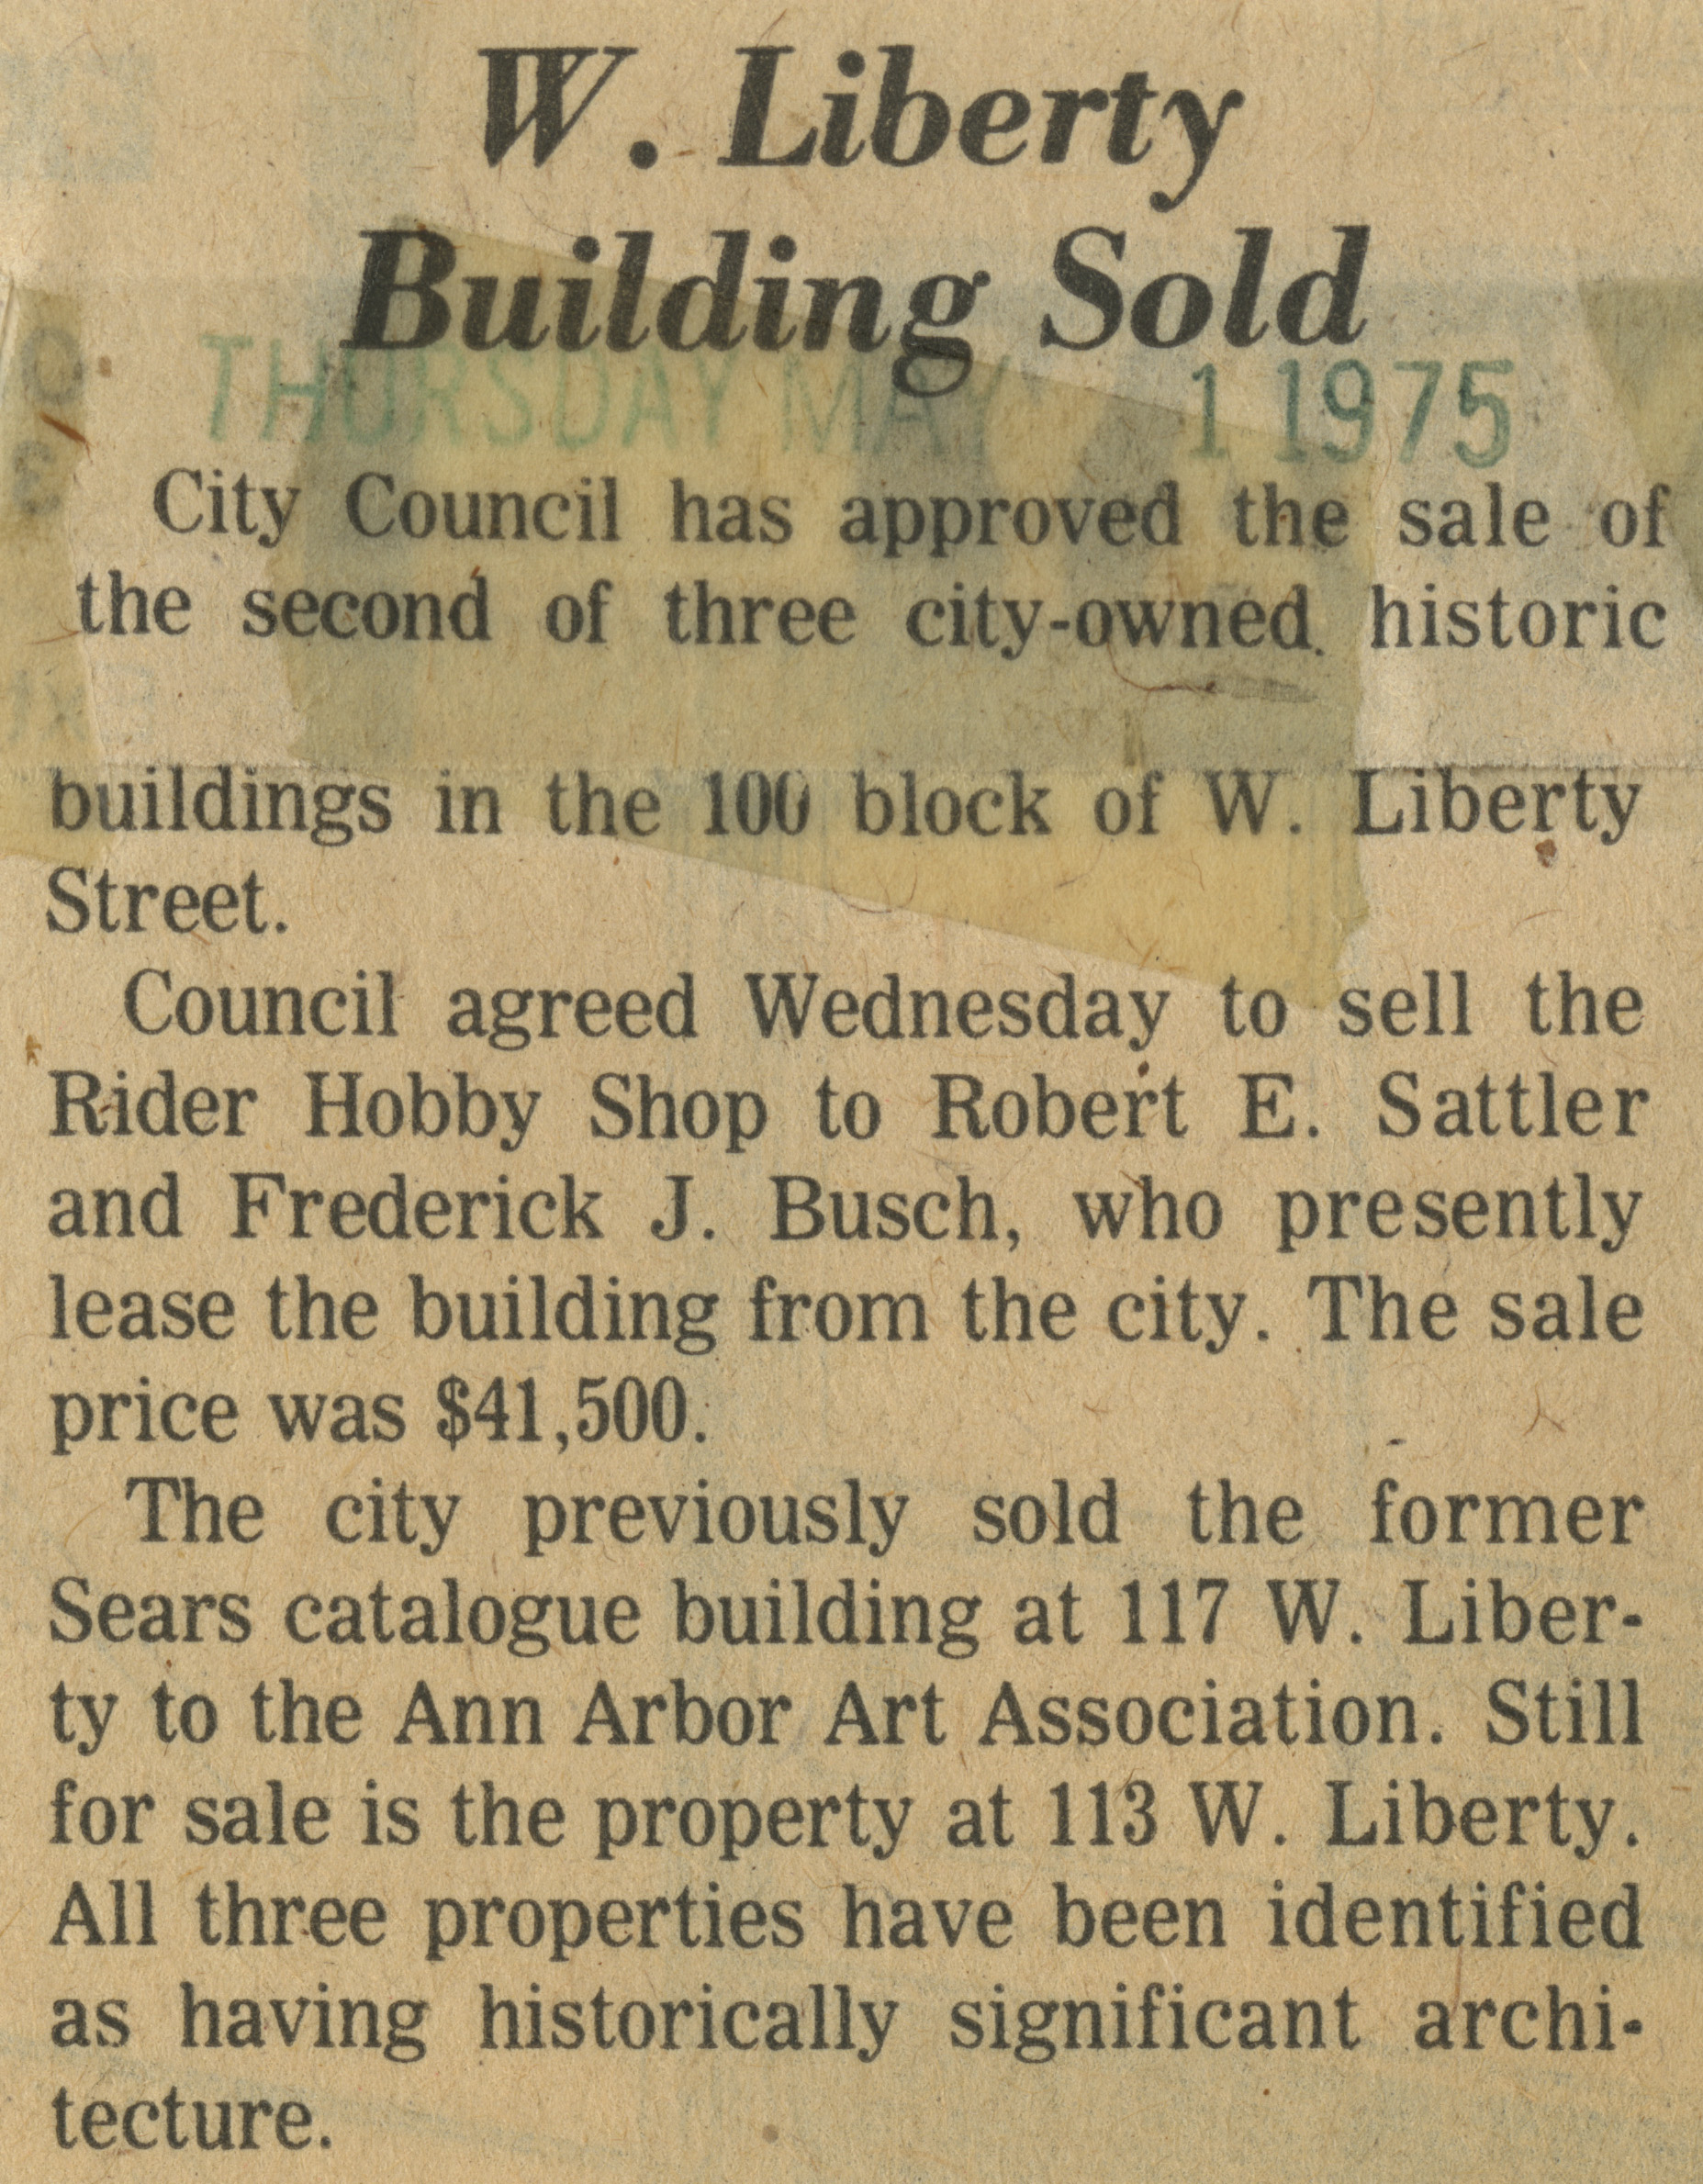 W. Liberty Building Sold image